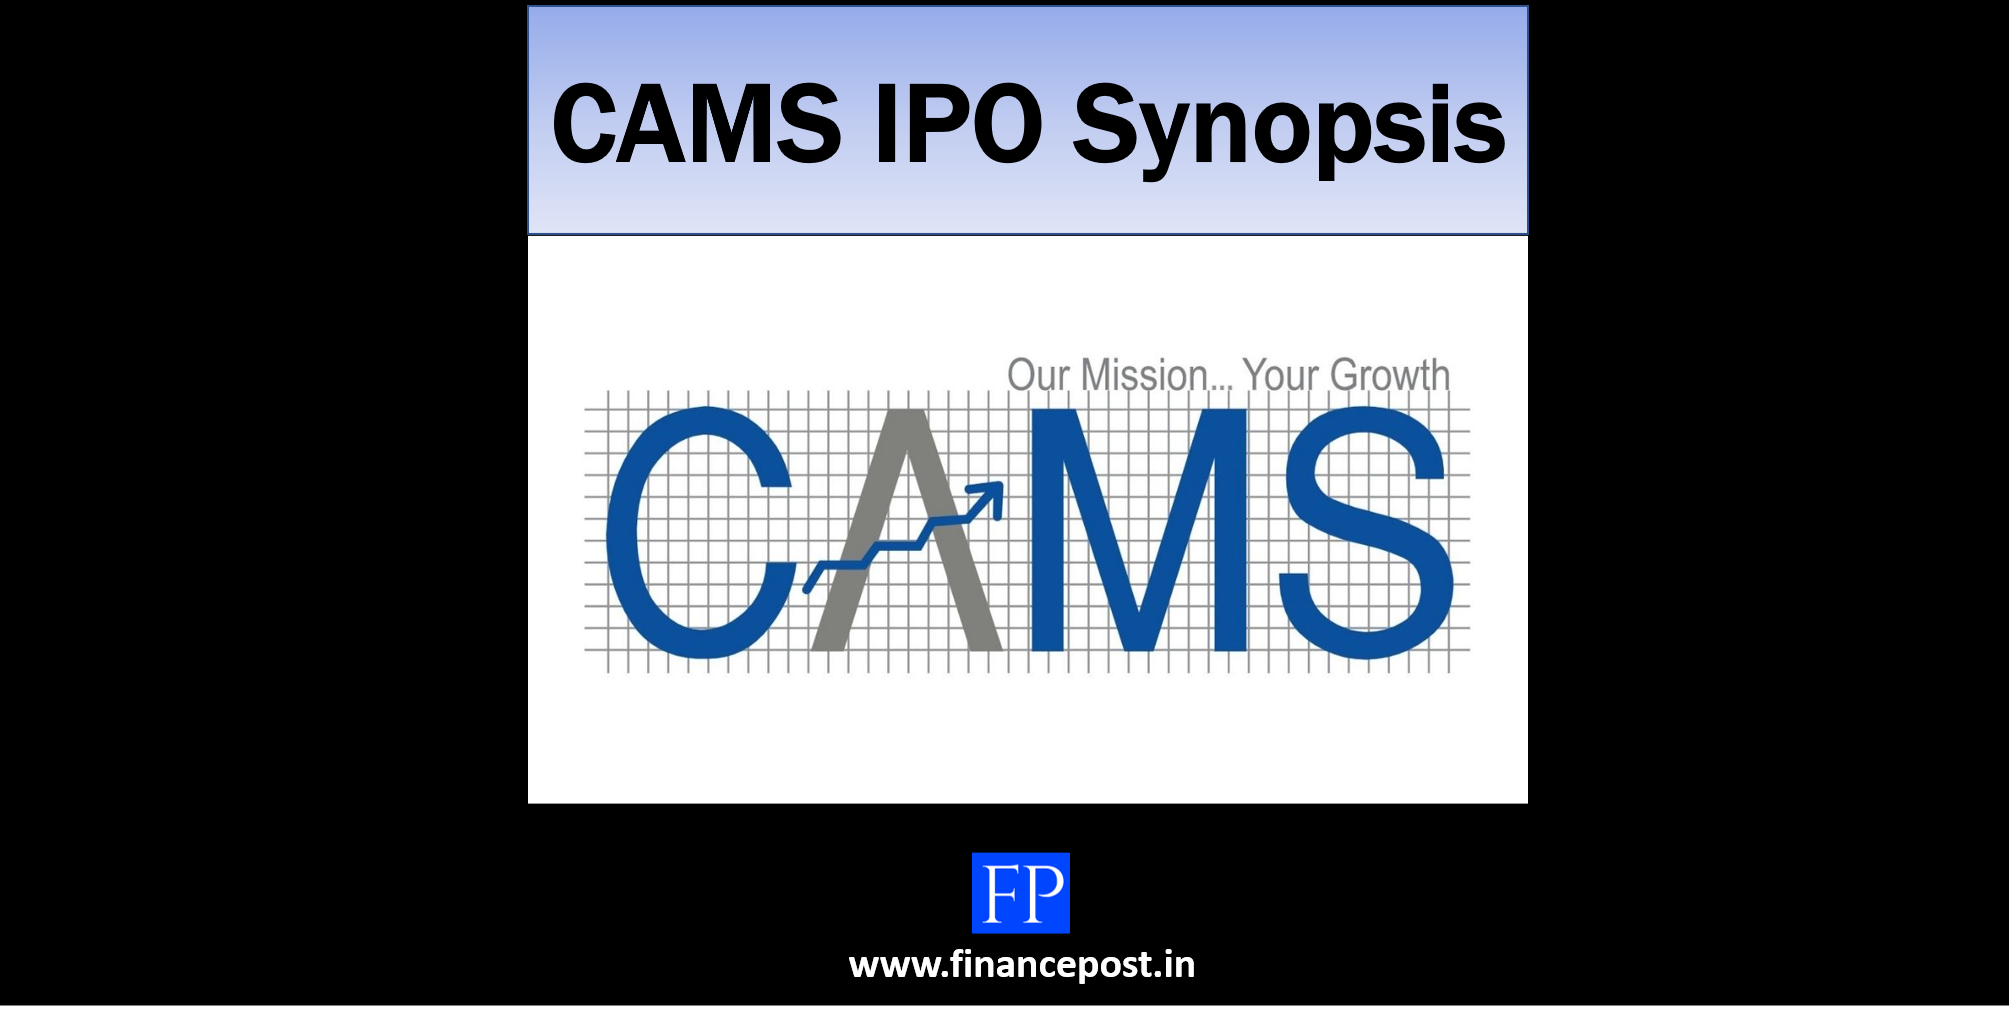 CAMS IPO Synopsis